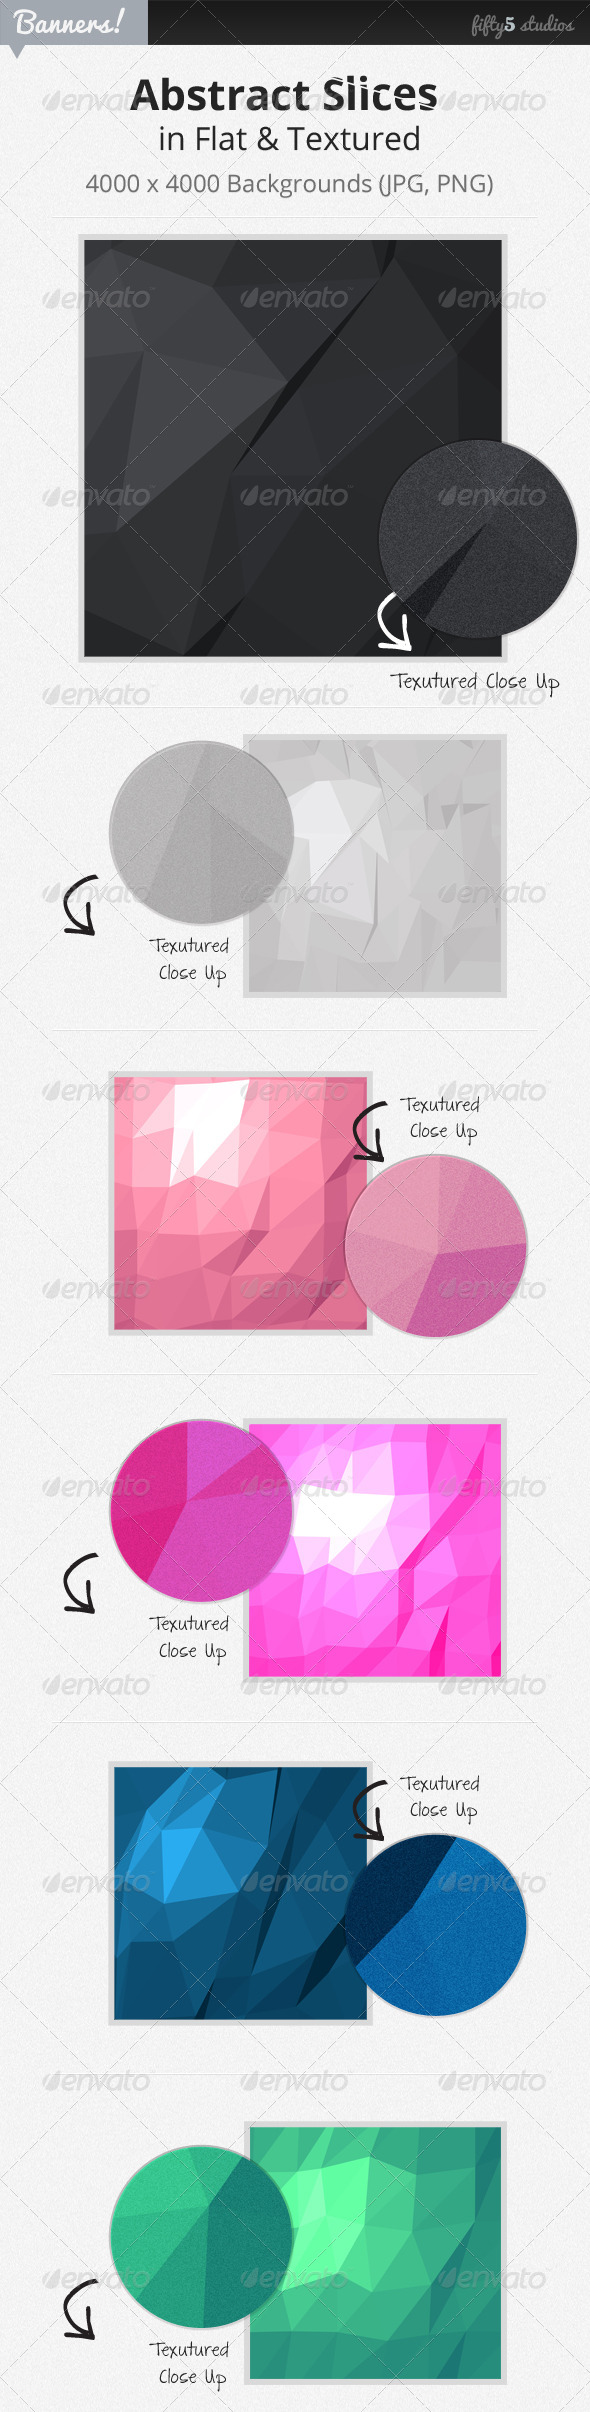 24 Abstract Slices Graphic Backgrounds - Abstract Backgrounds